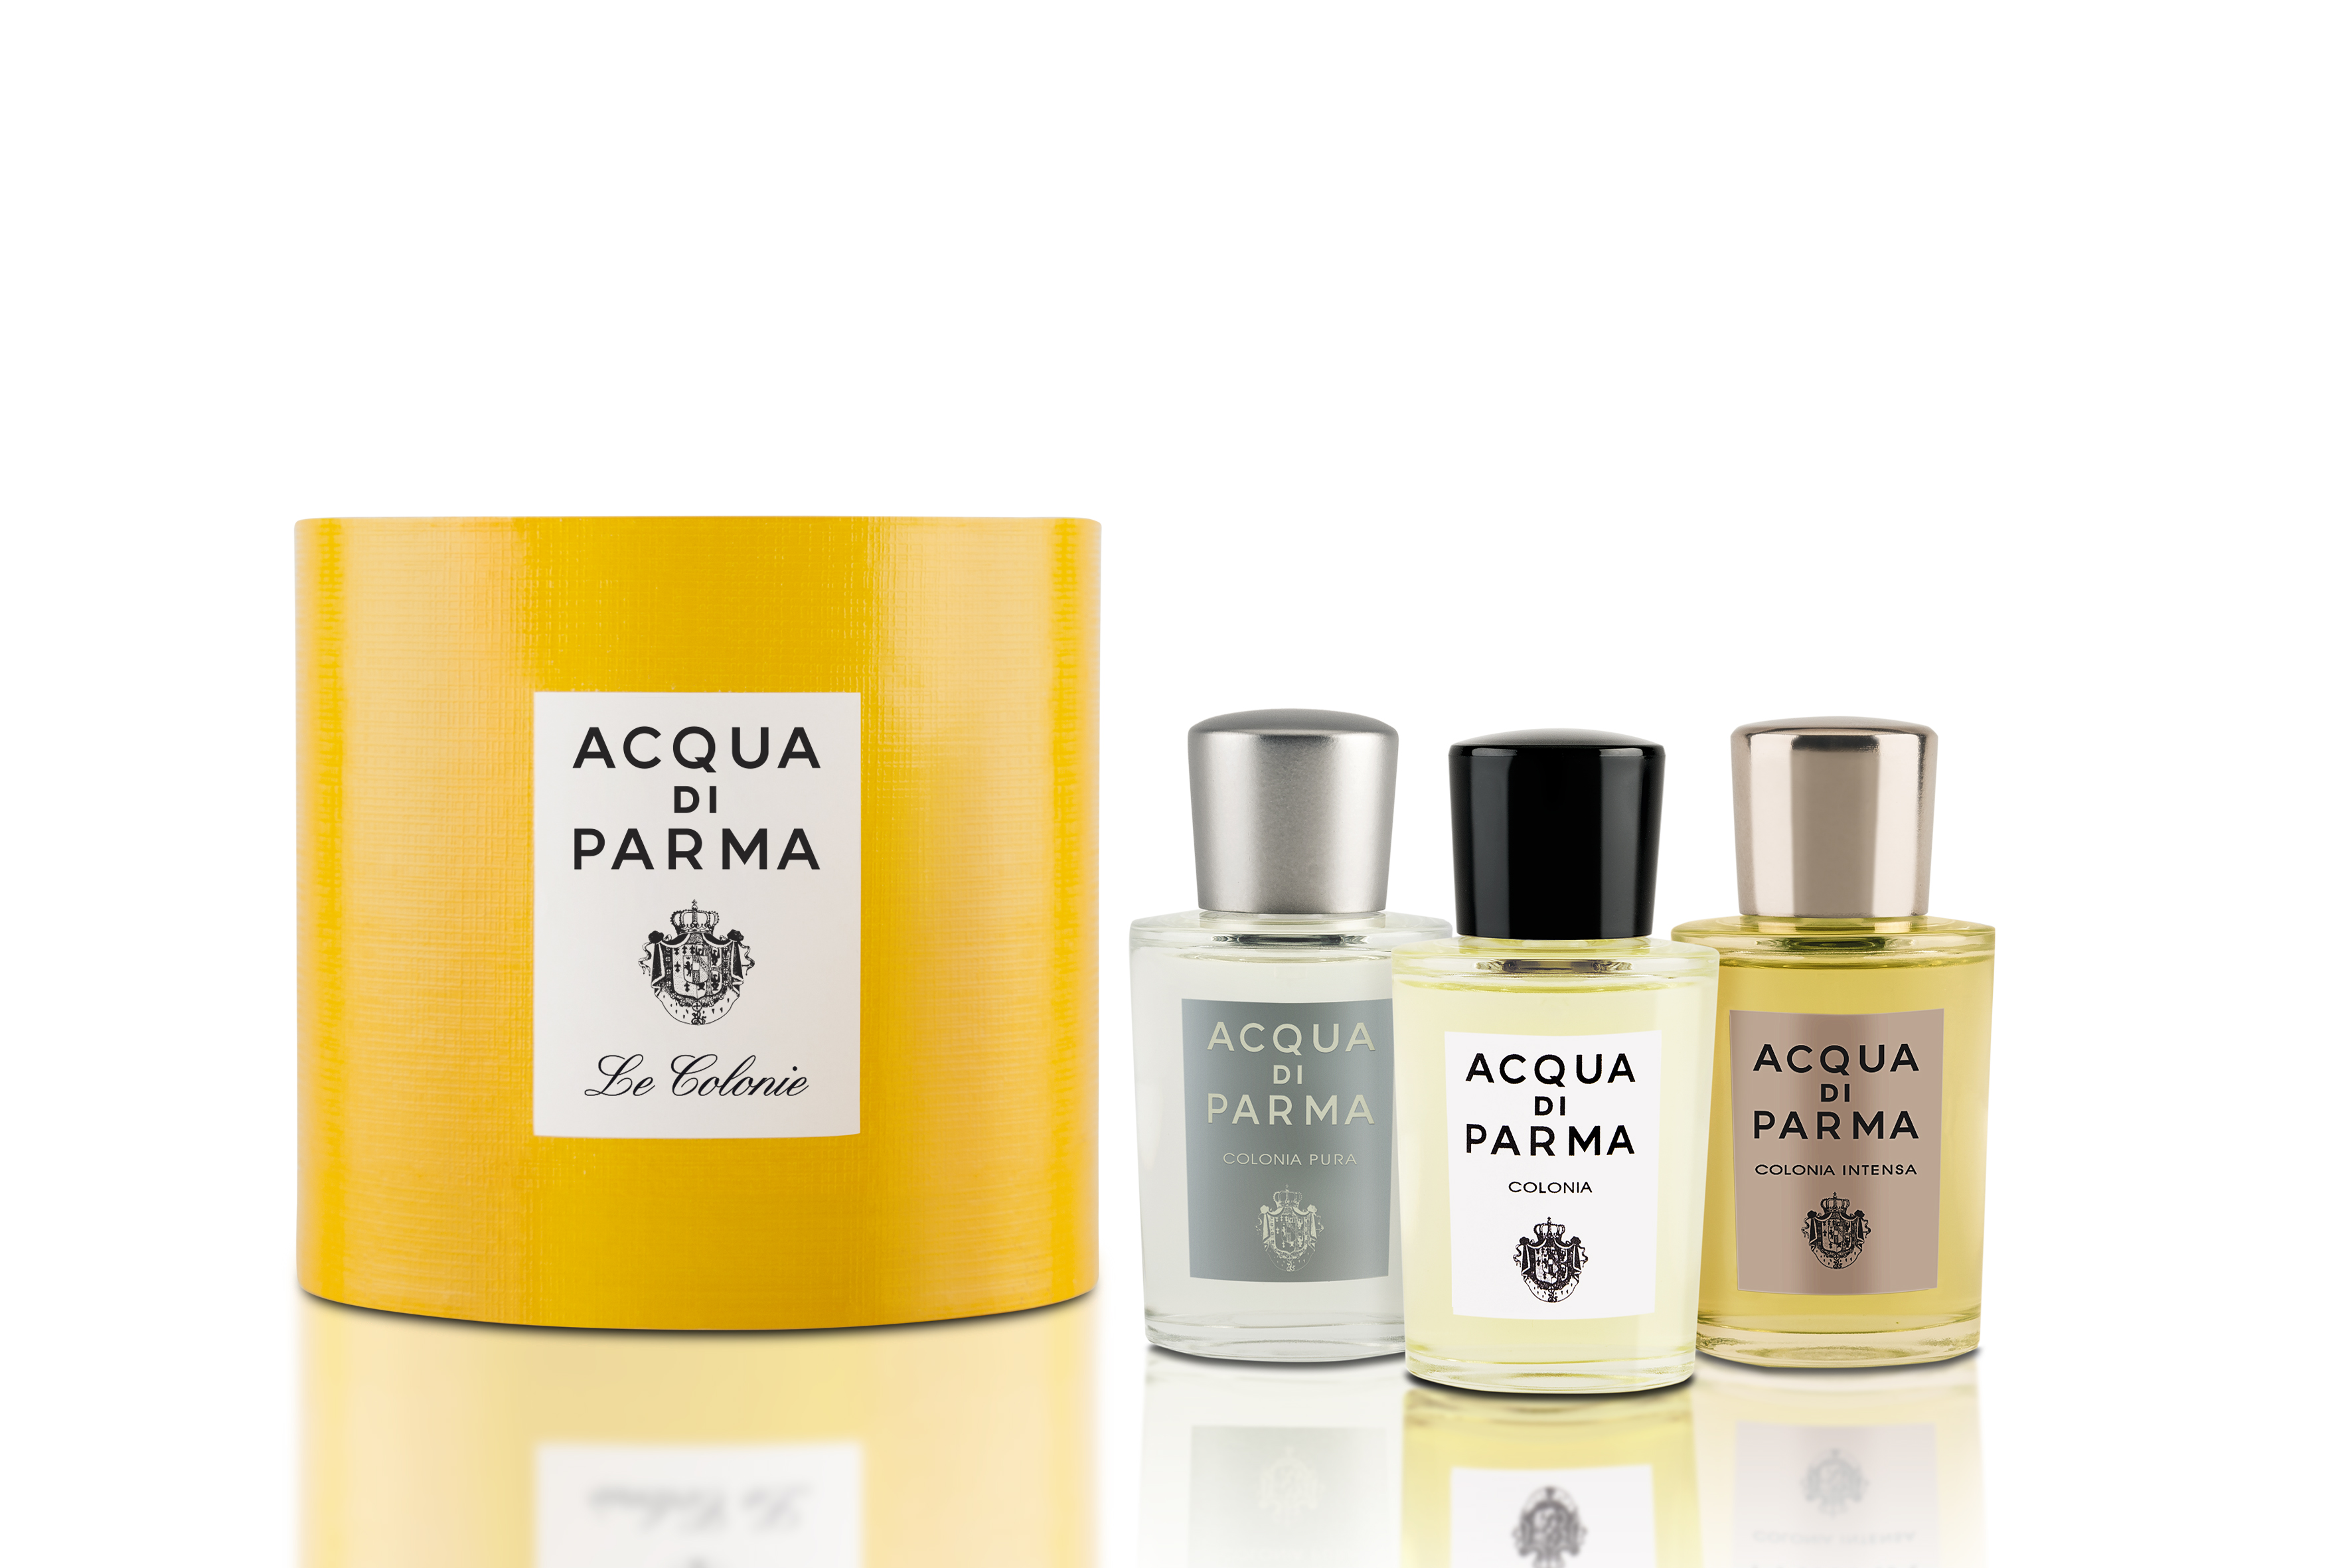 AQDP Colonia Hatbox 3 x 20 ml 3*20 ml